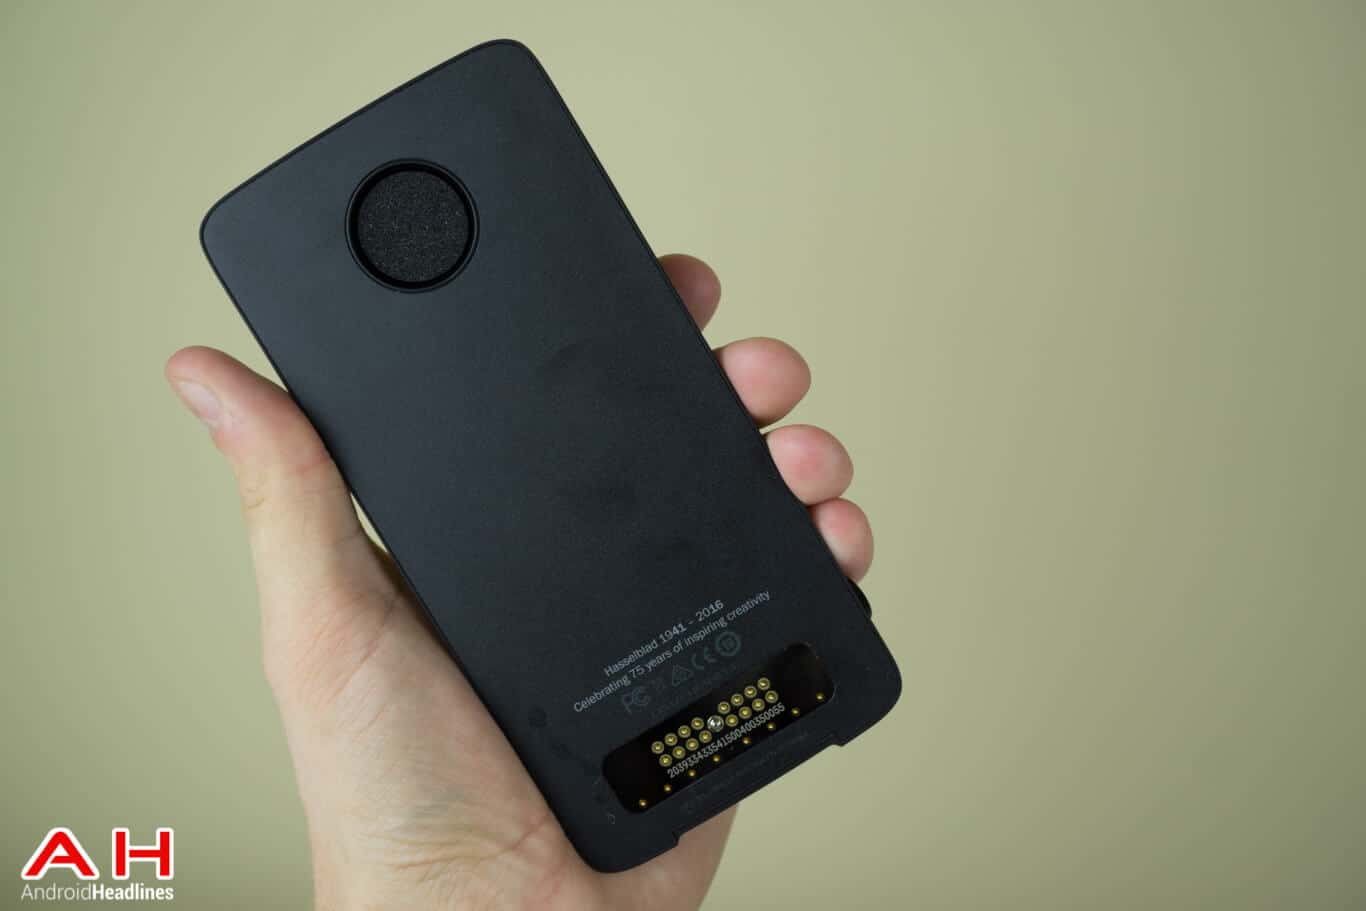 Hasselblad Camera Moto Mod Review AM AH 9